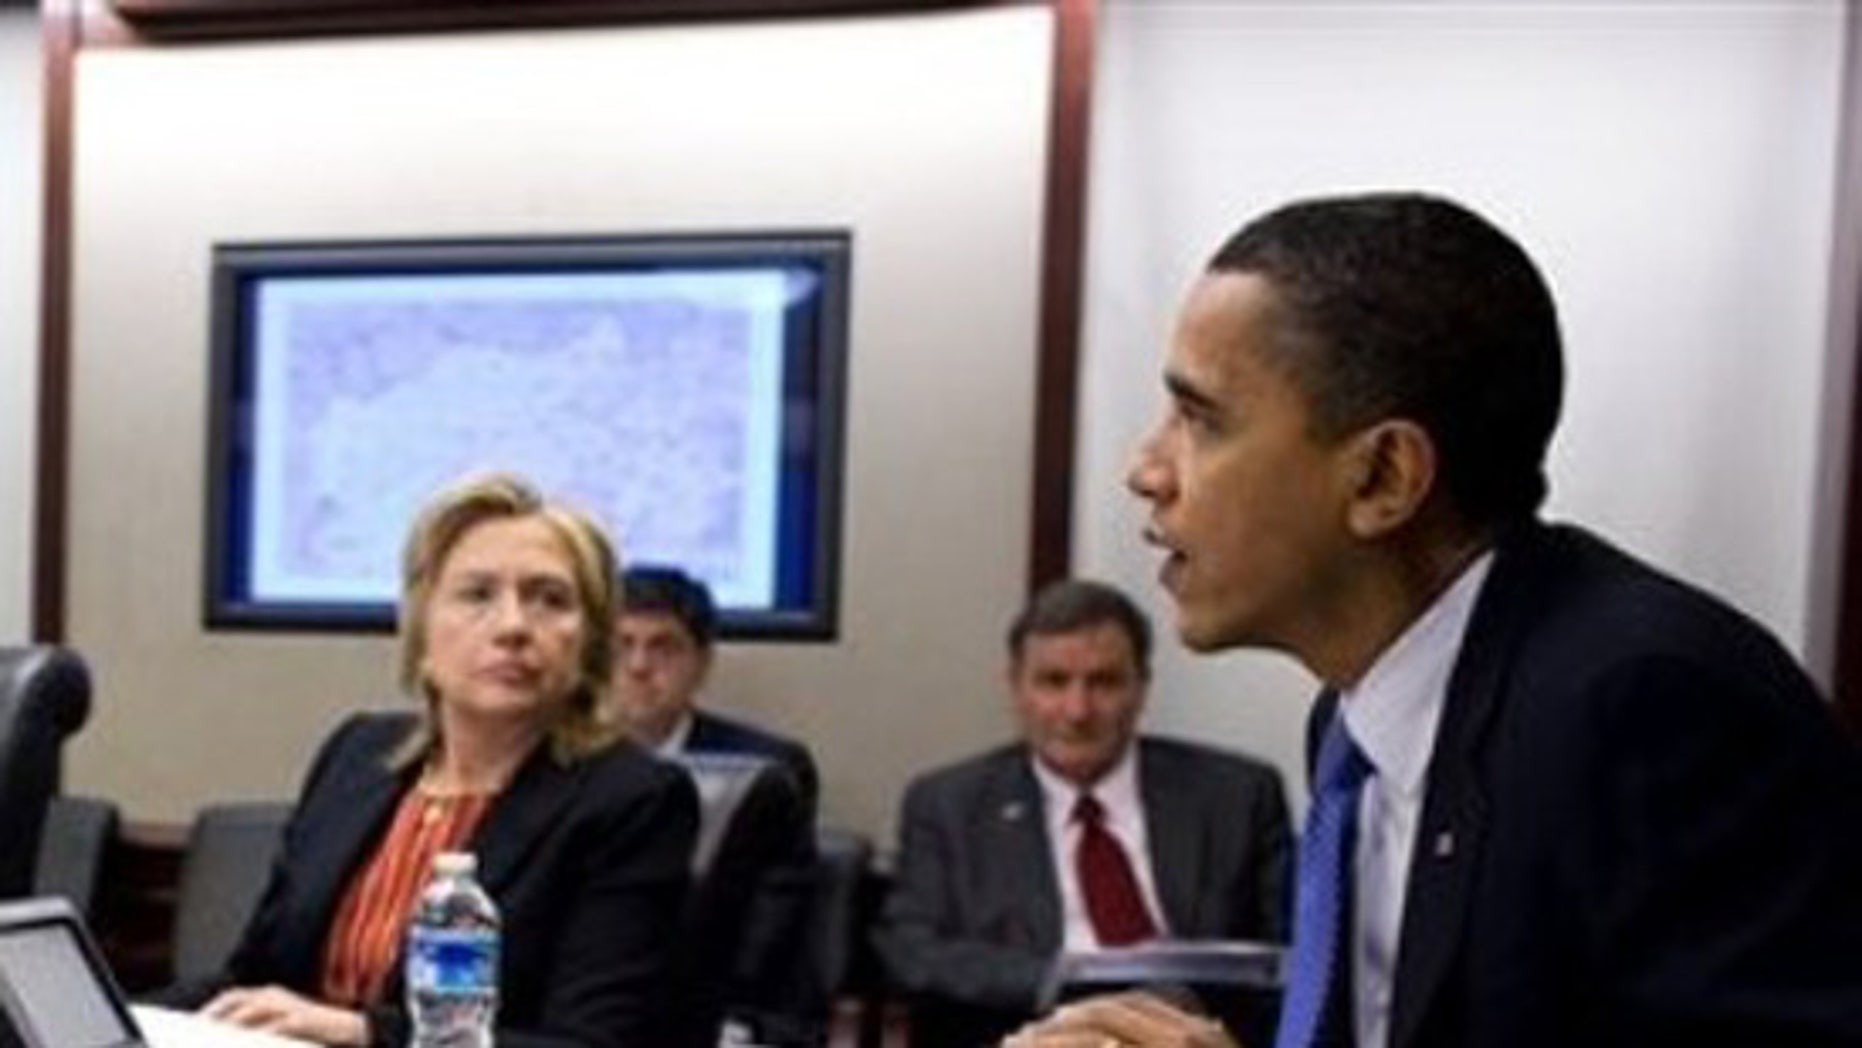 This photo provided by the White House shows President Obama meeting with his national security team, Friday, March 12, 2010, in the Situation Room of the White House. (AP)